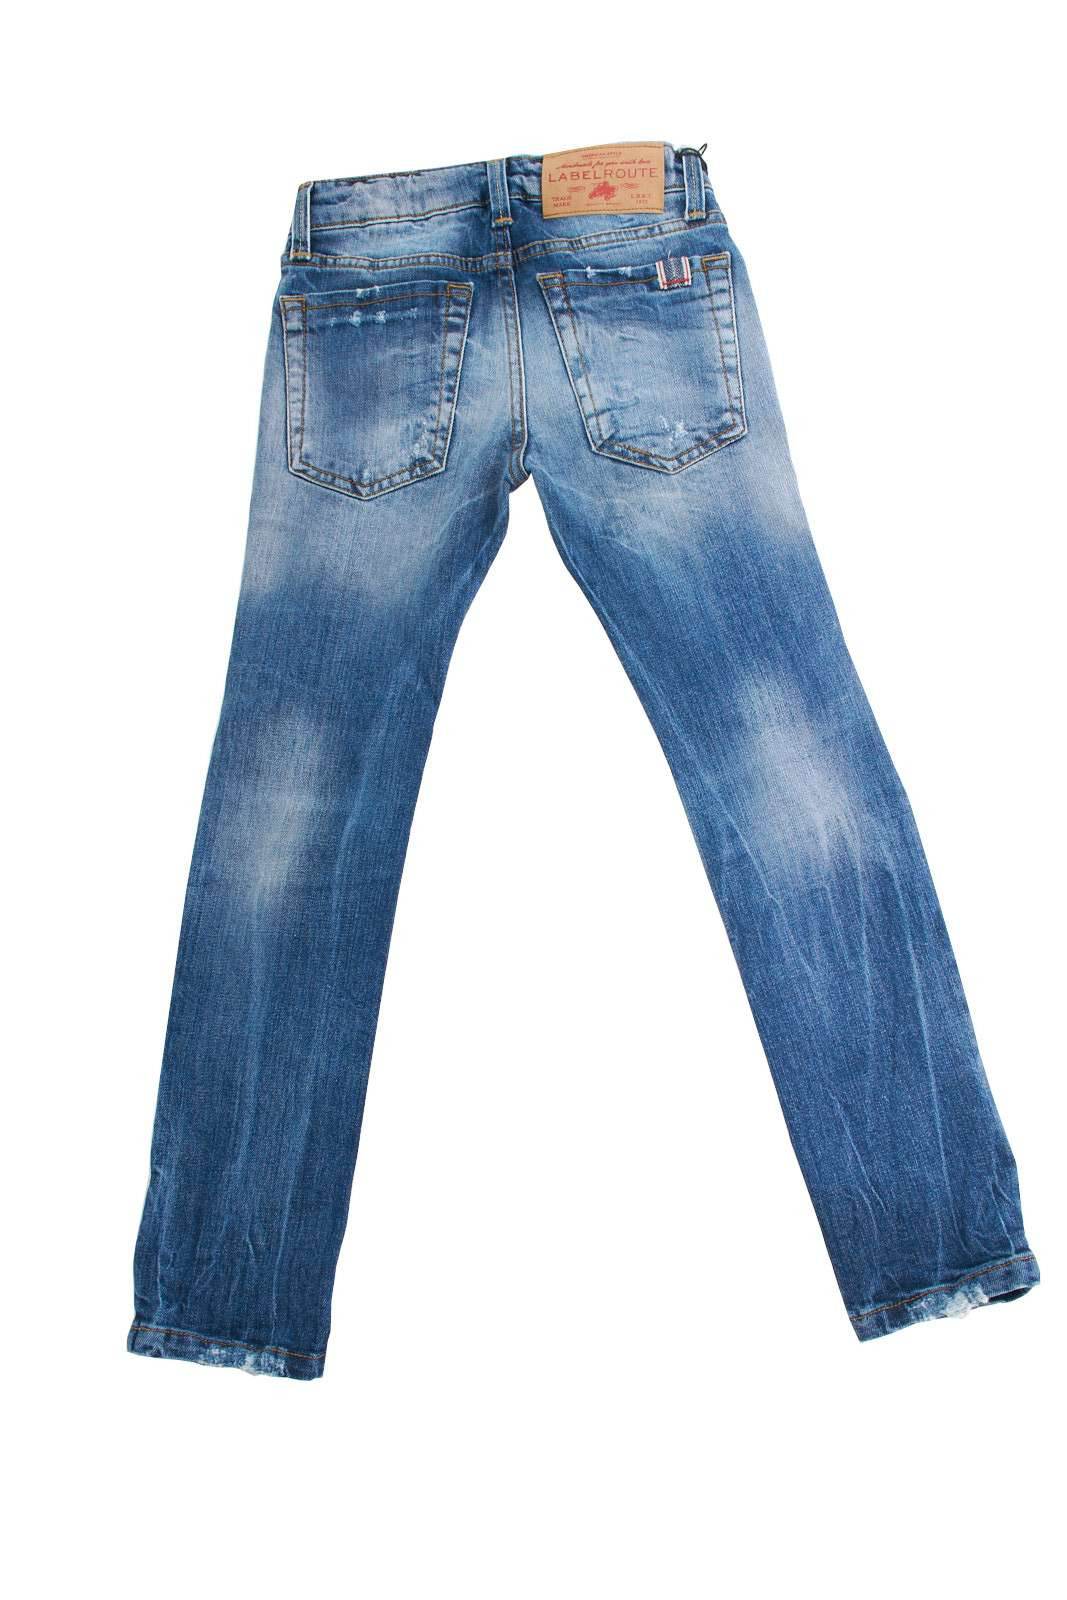 https://www.parmax.com/media/catalog/product/a/i/PE-outlet_parmax-denim-bambino-Label-Route-KANSAS-B.jpg